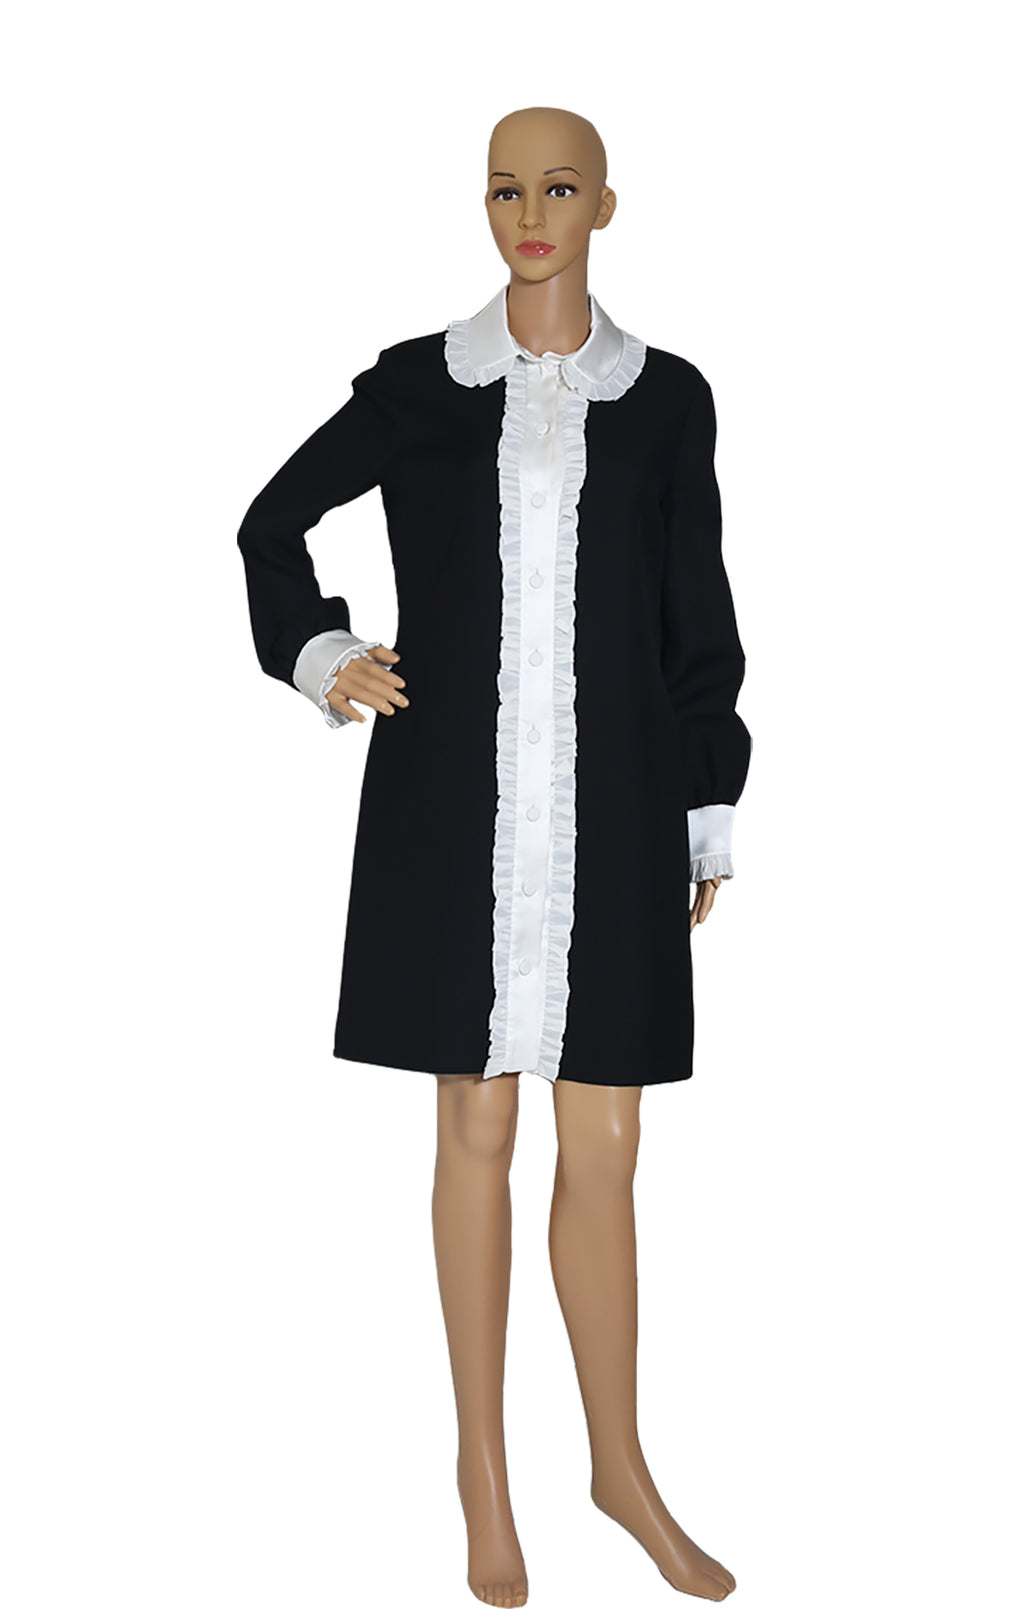 Front view of GUCCI Black and White Collared Dress with Tags Size: IT 44 (US 8)